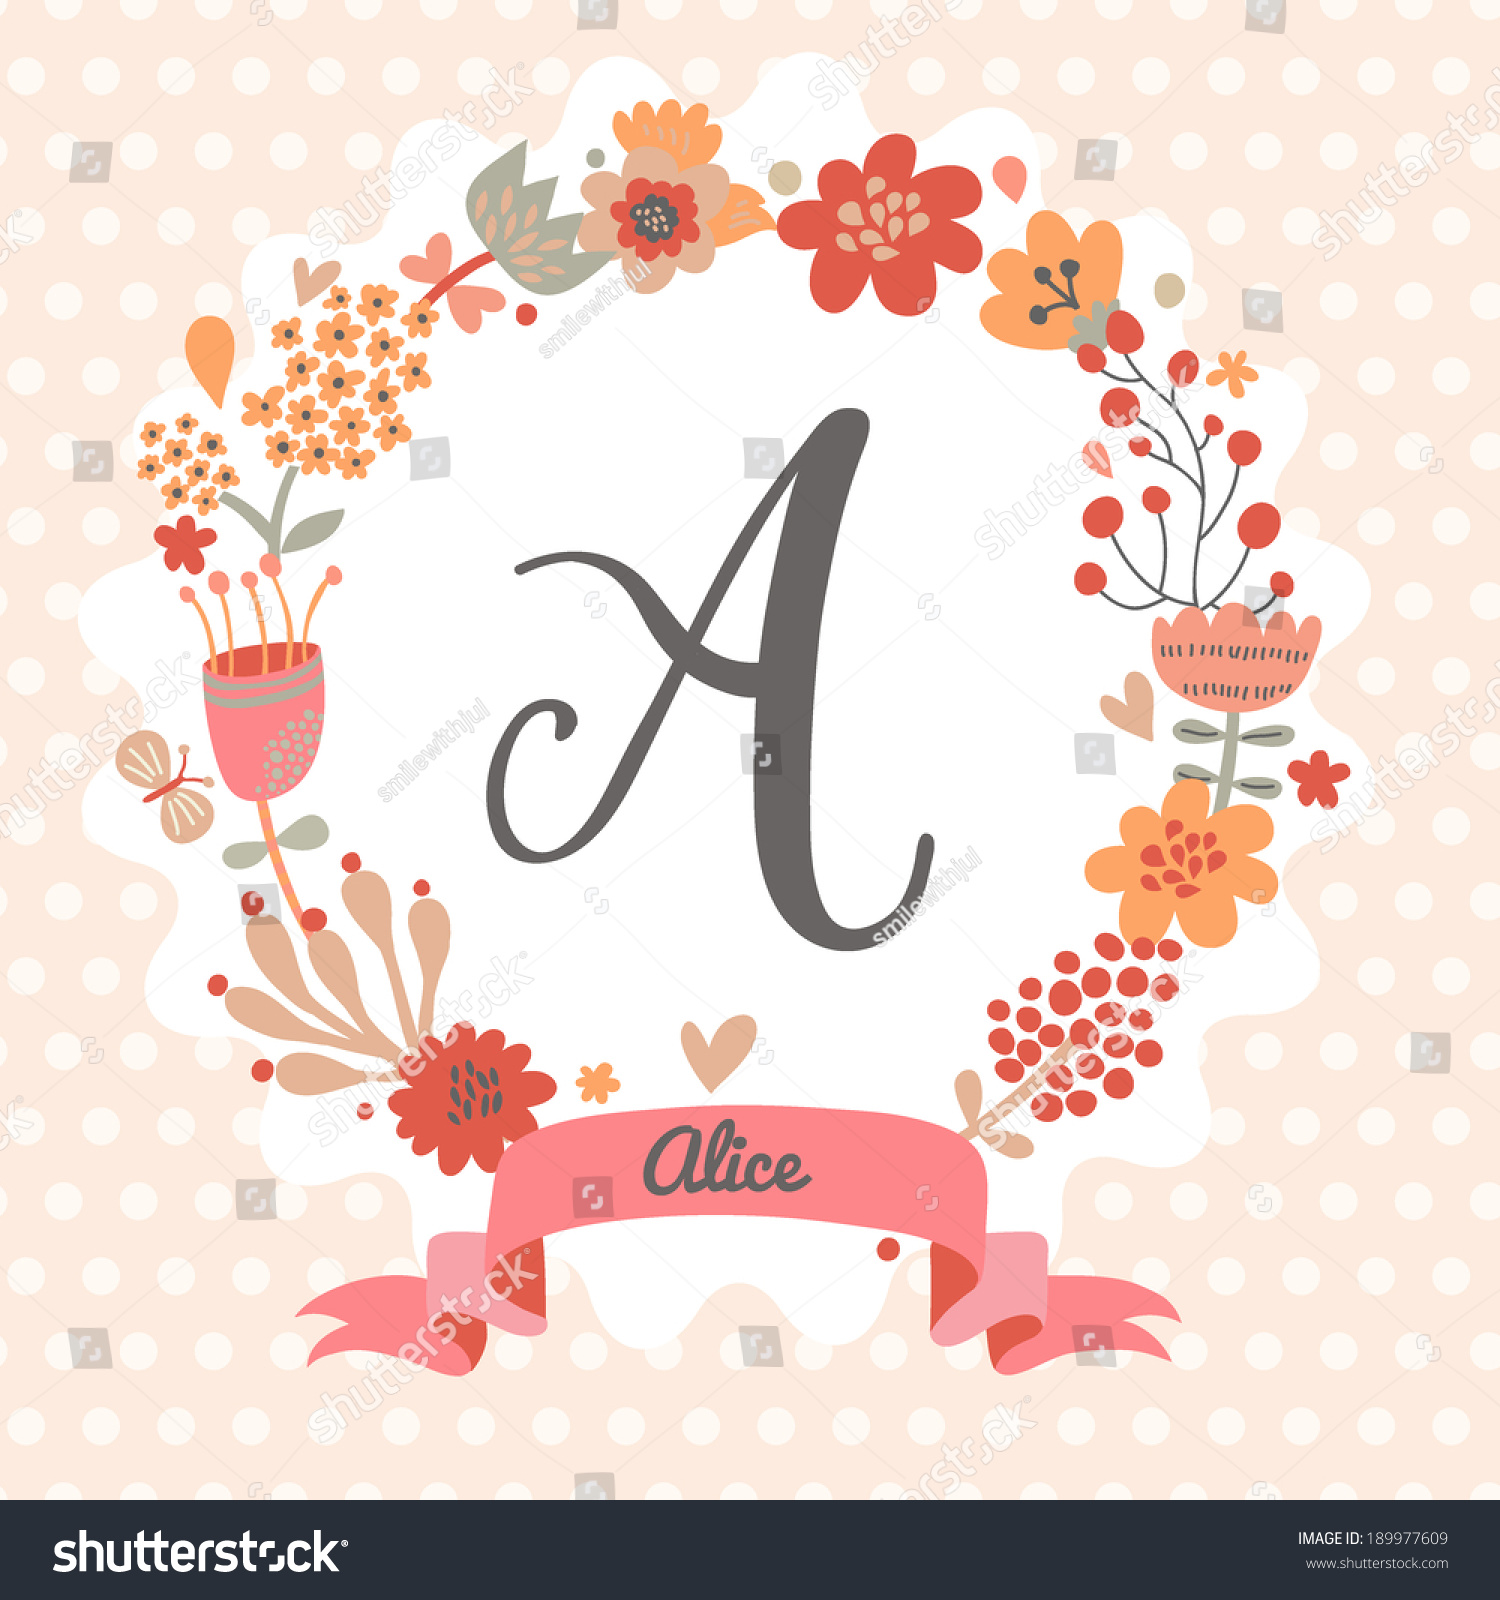 Buy Letter a stylish images picture trends